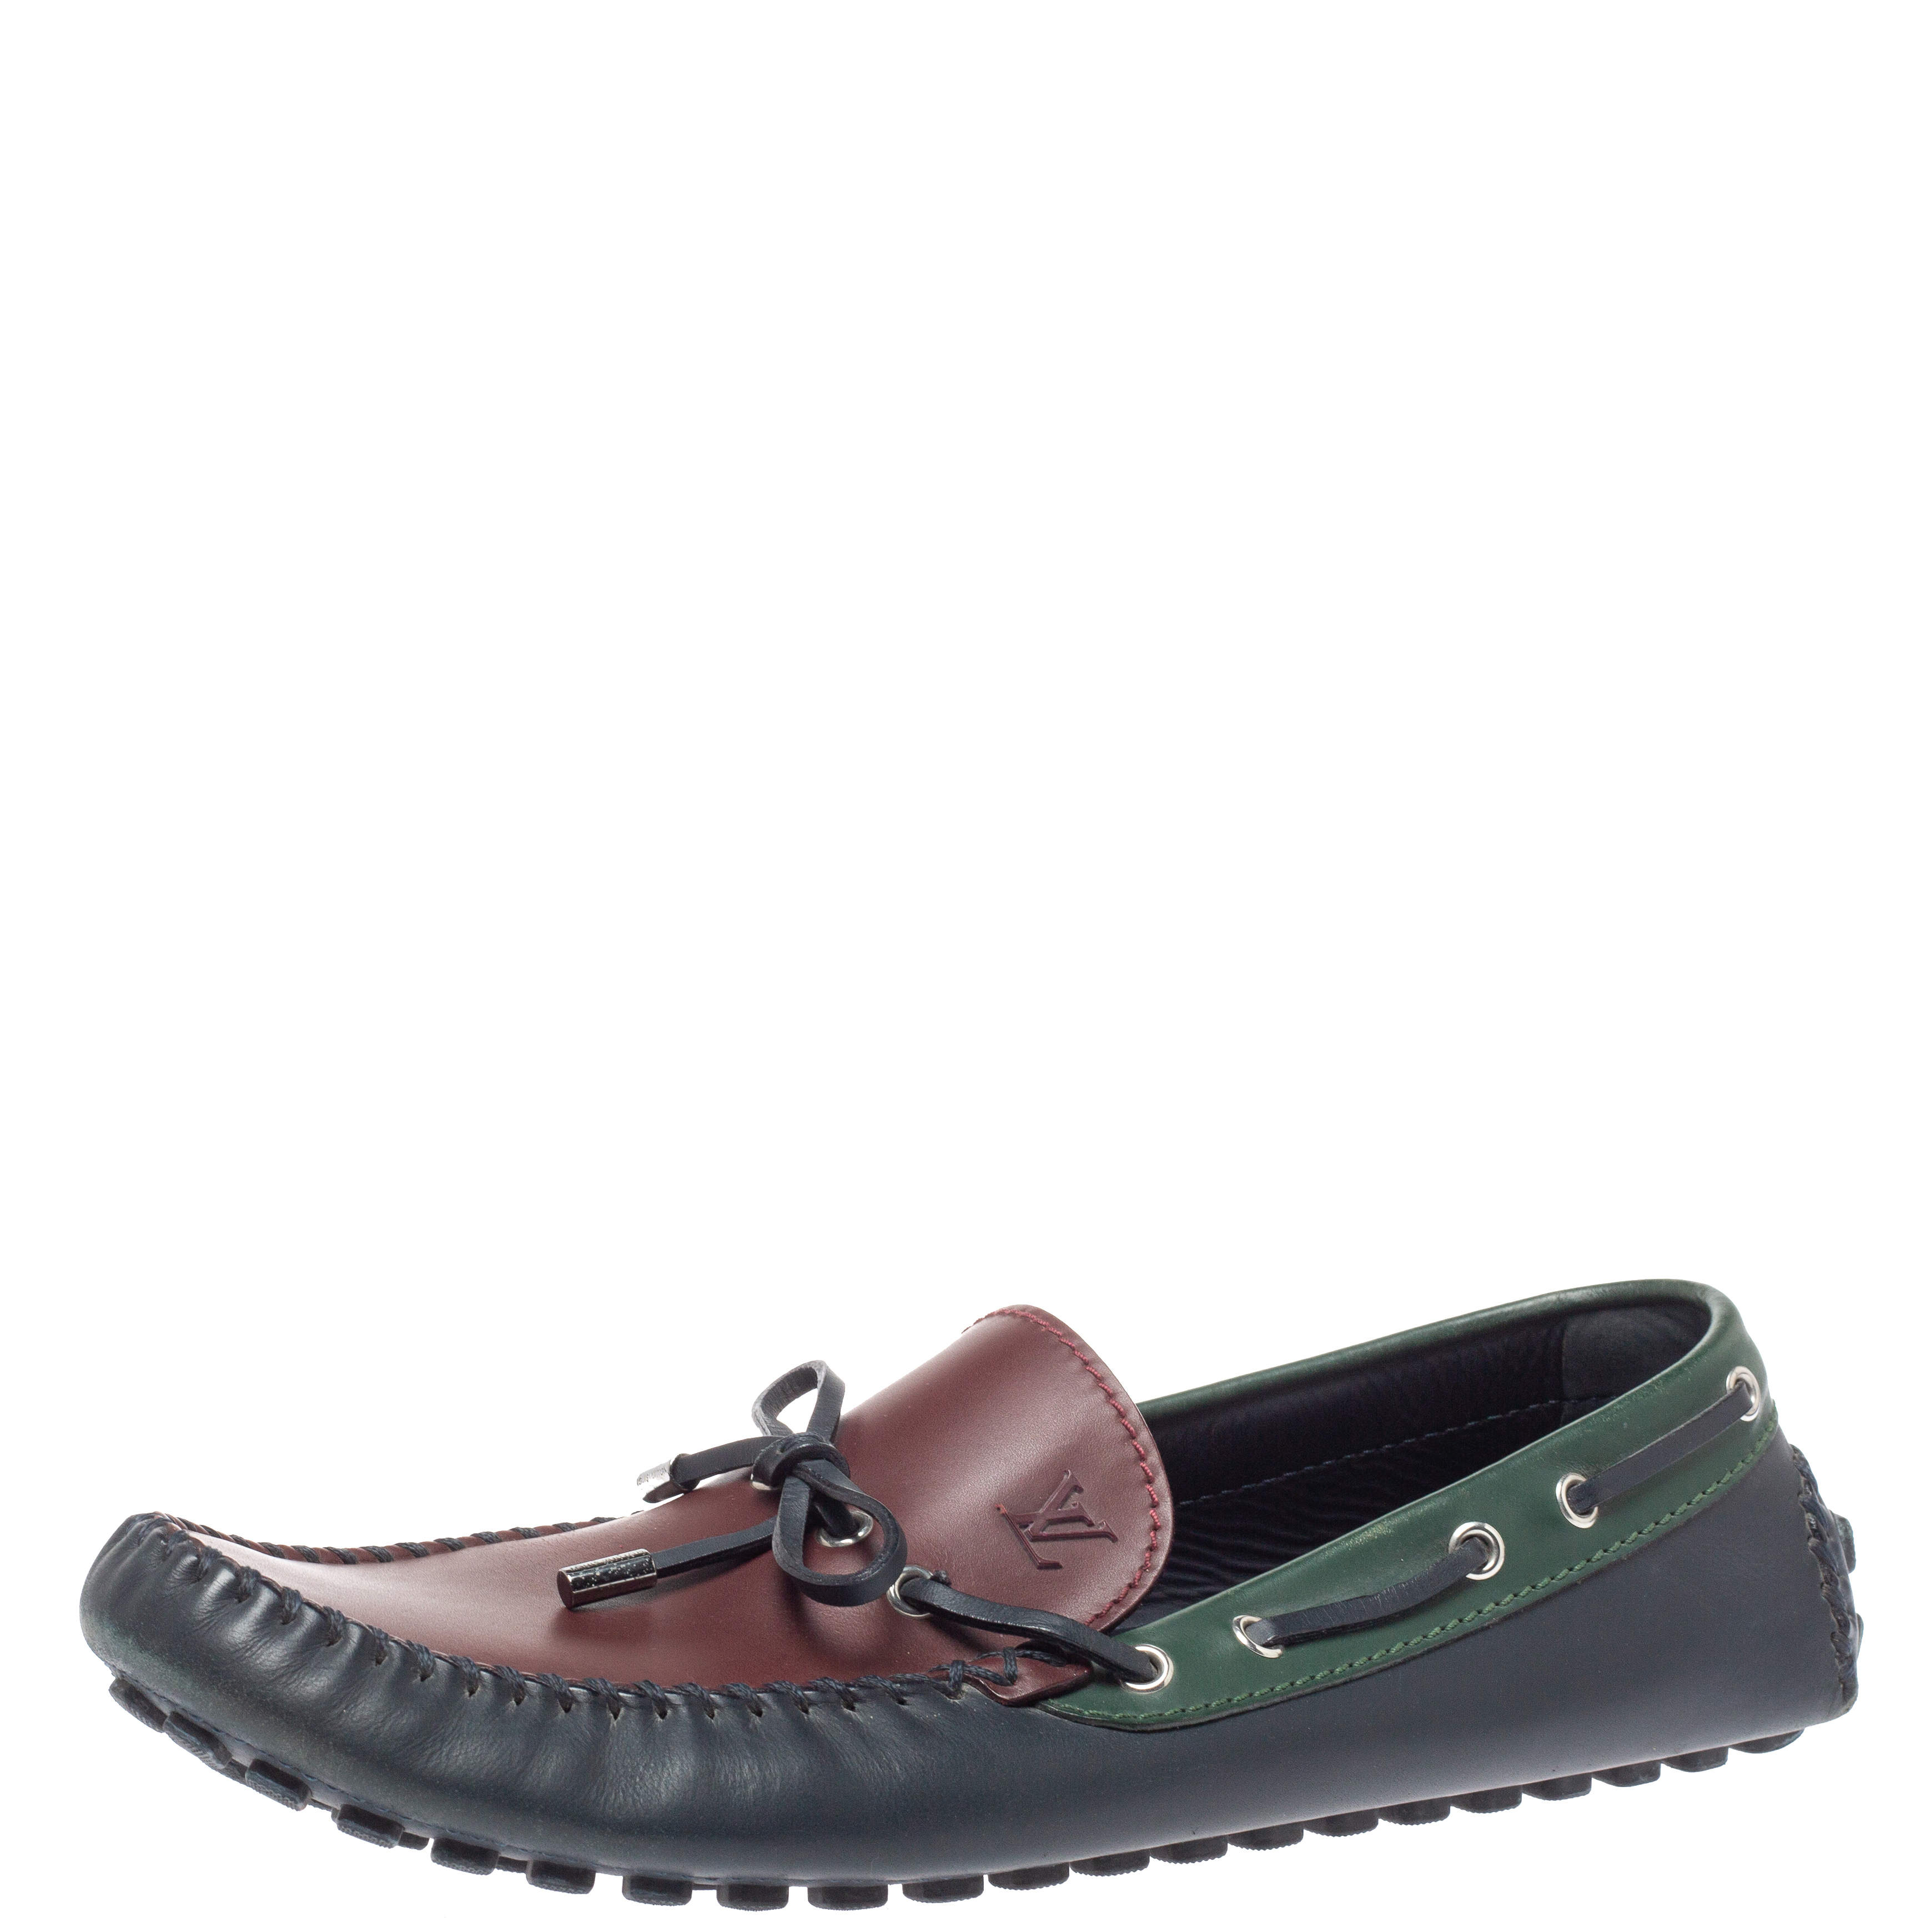 Louis Vuitton Tricolor Leather Arizona Slip On Loafers Size 46.5